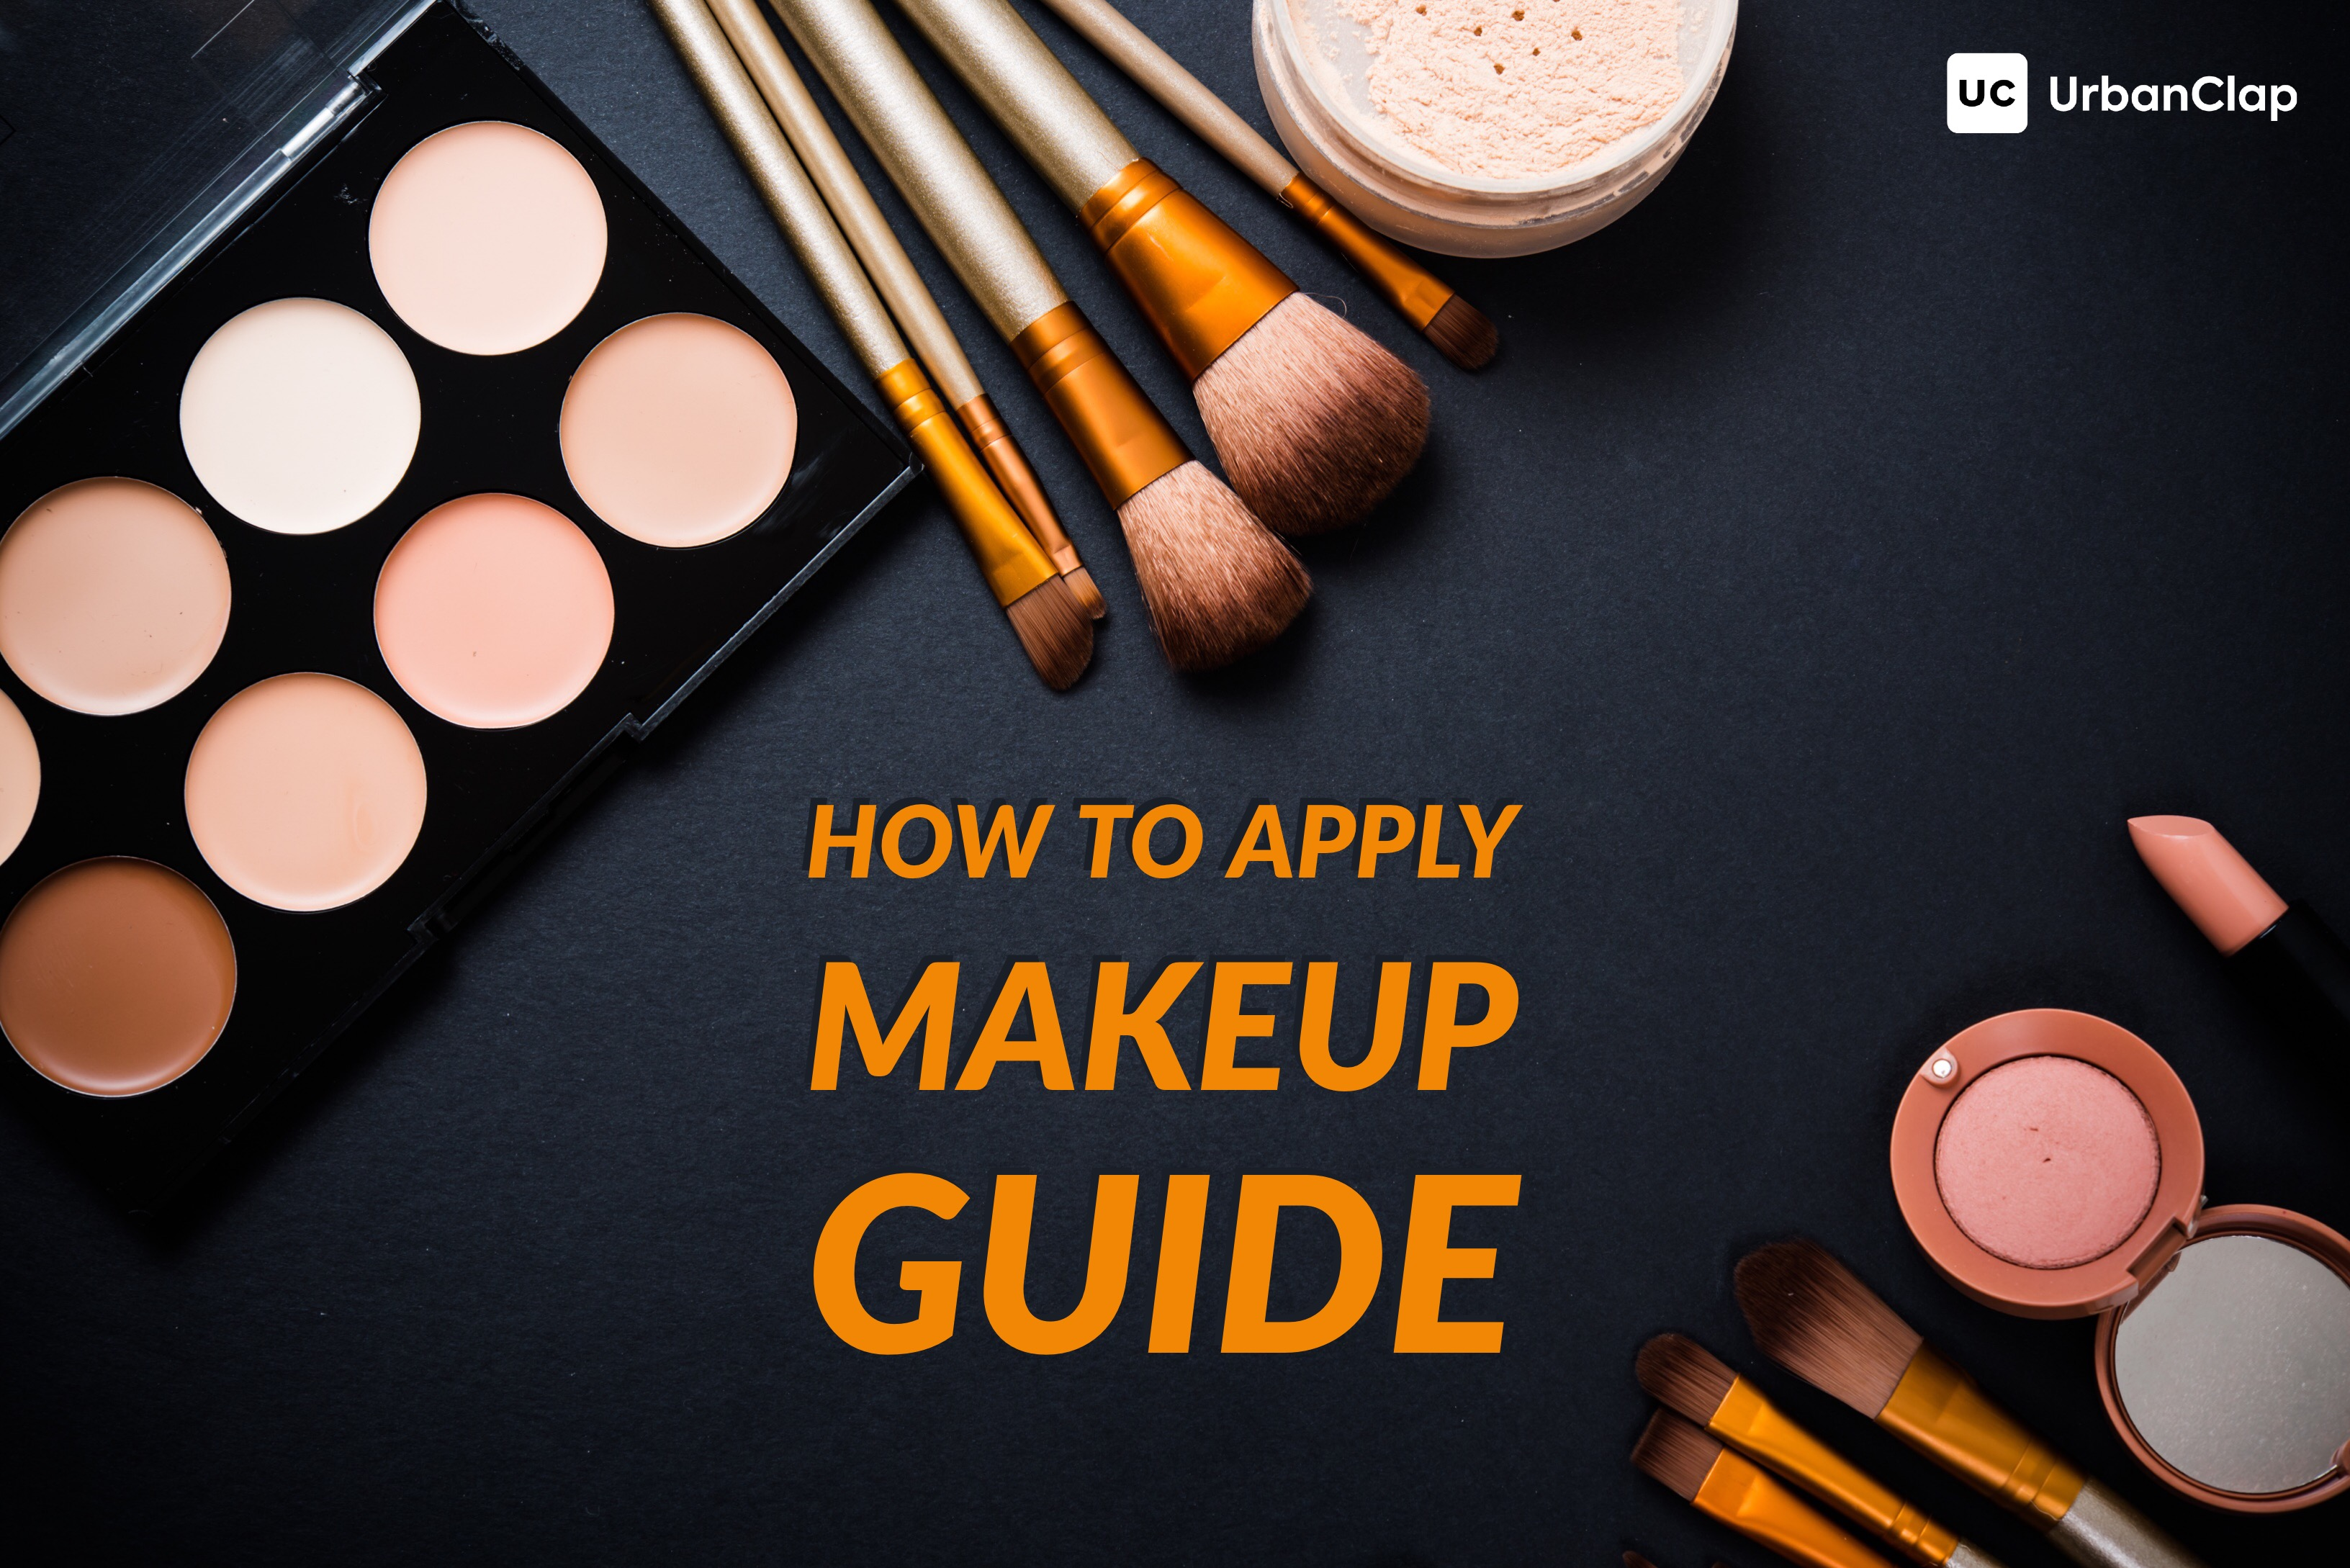 How To Apply Makeup Guide: 10 Simple Steps To Get The Perfect Finish